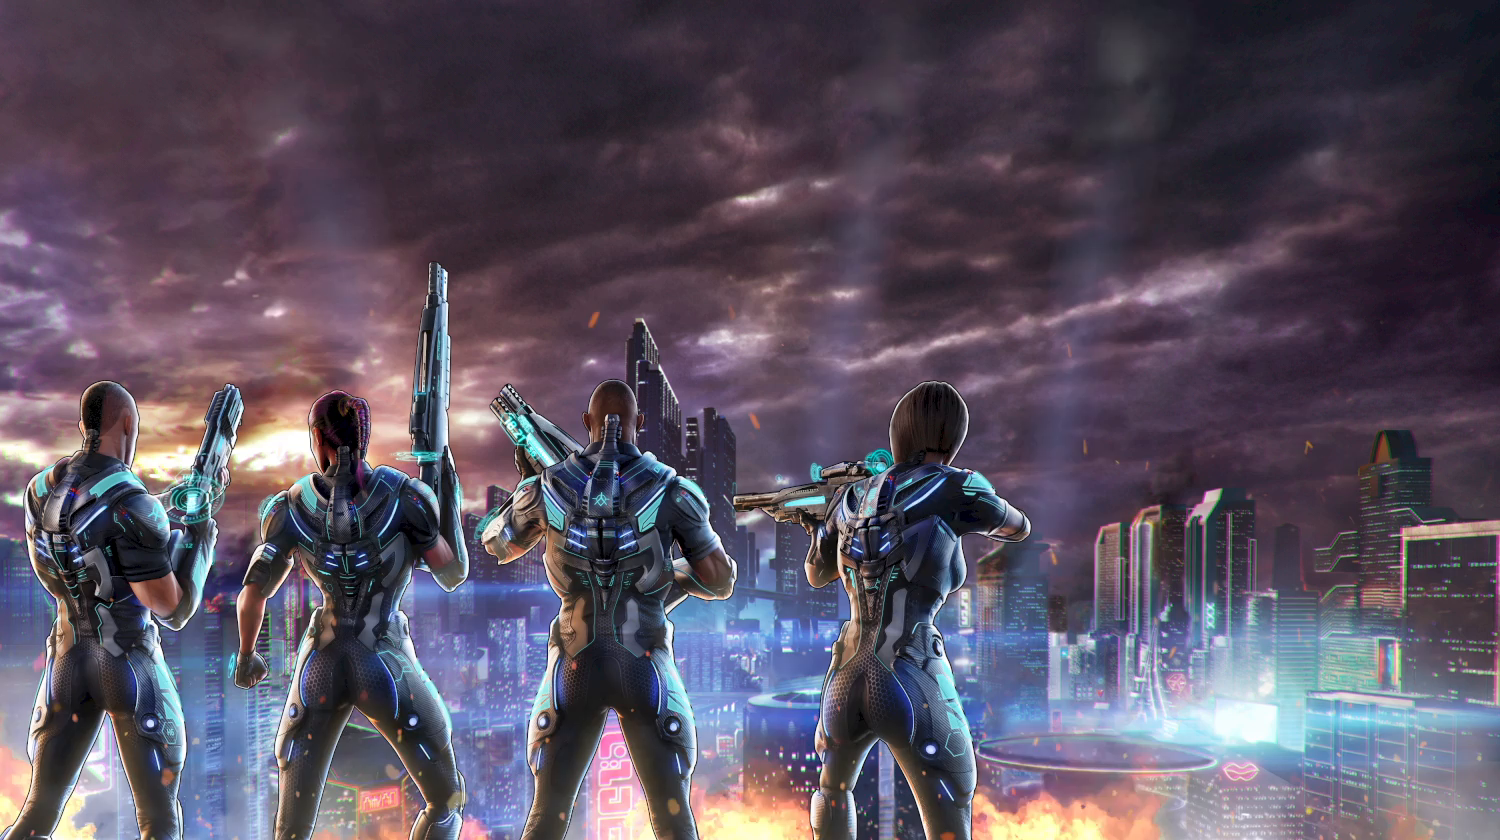 crackdown 3 ps4 release date